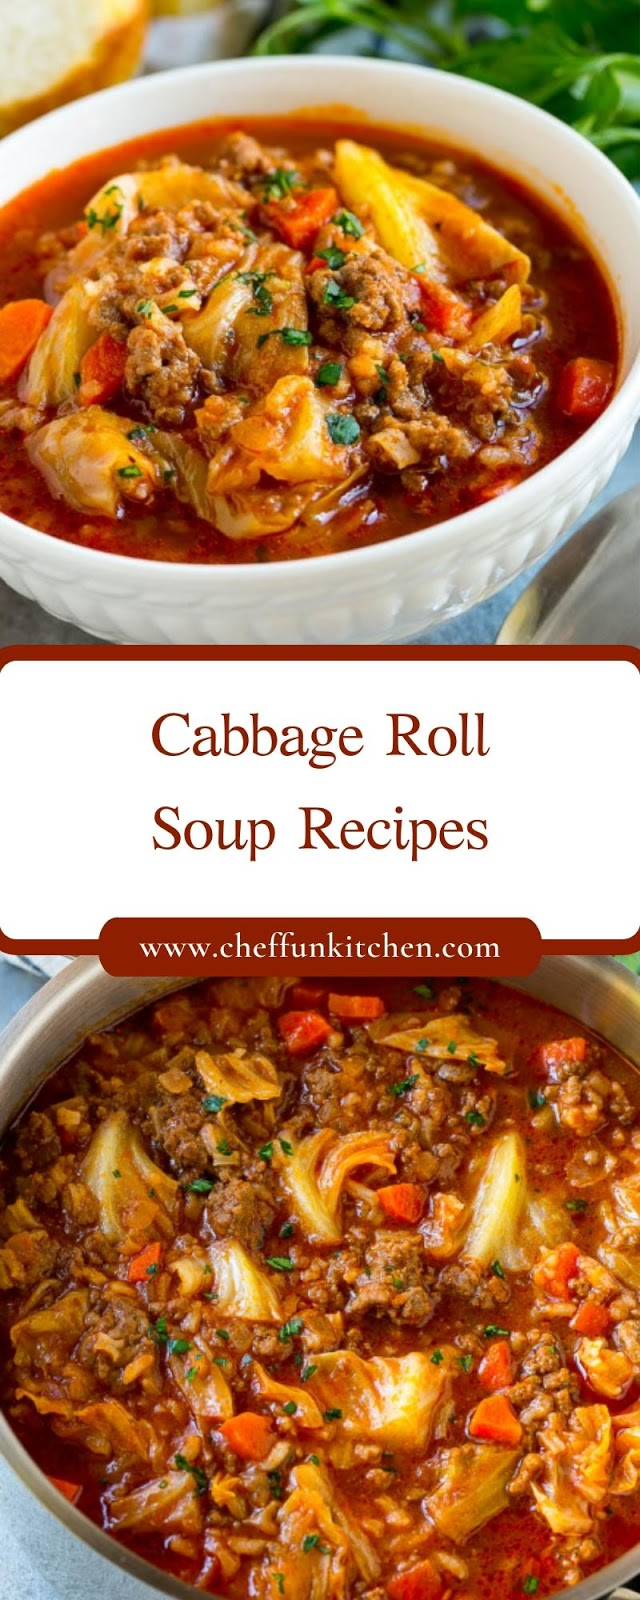 Cabbage Roll Soup Recipes